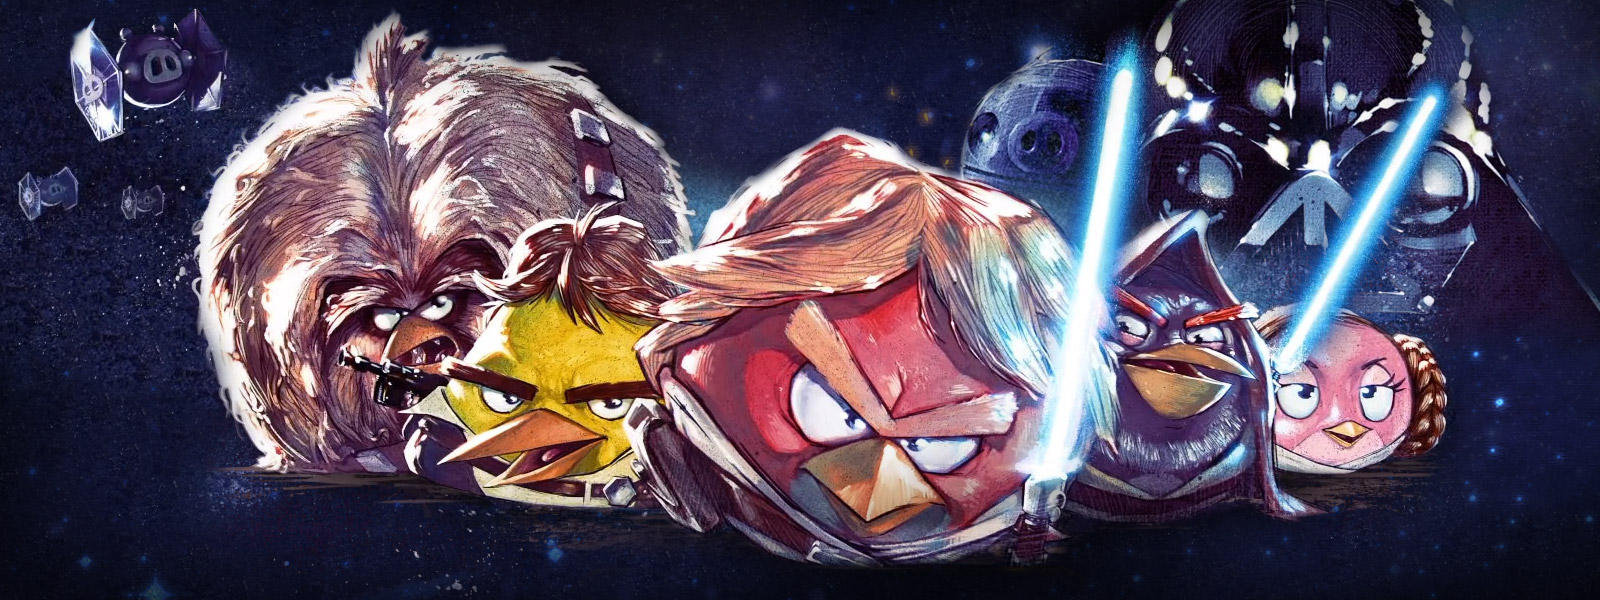 Angry Birds Star Wars wallpaper 8